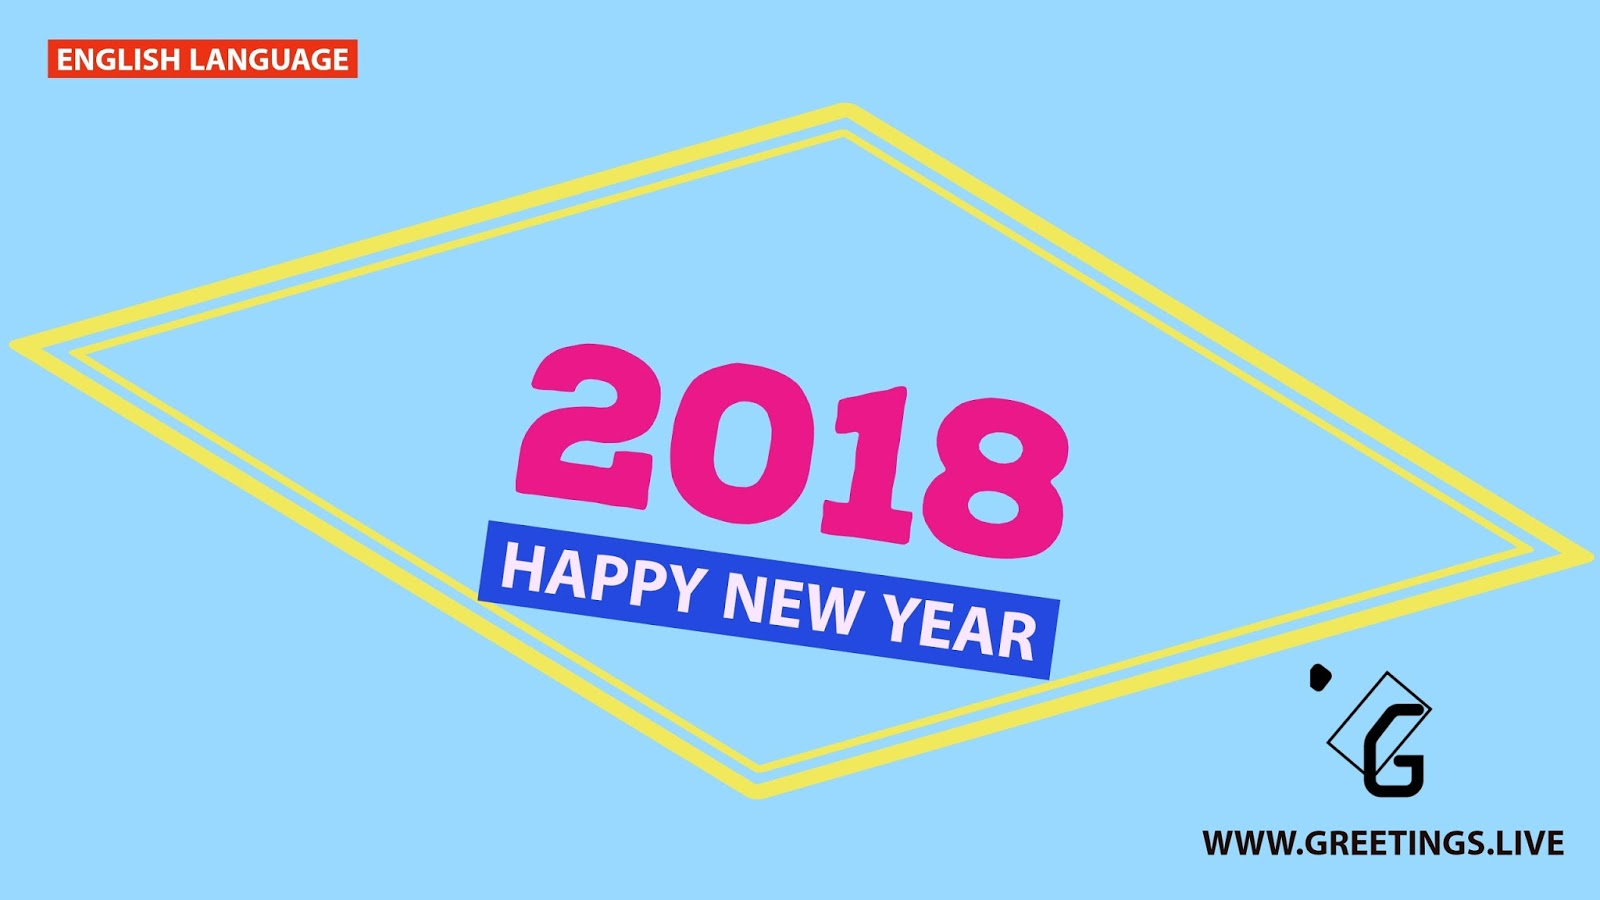 2018 new year wishes greetings cool new greetings live cool new greetings live m4hsunfo